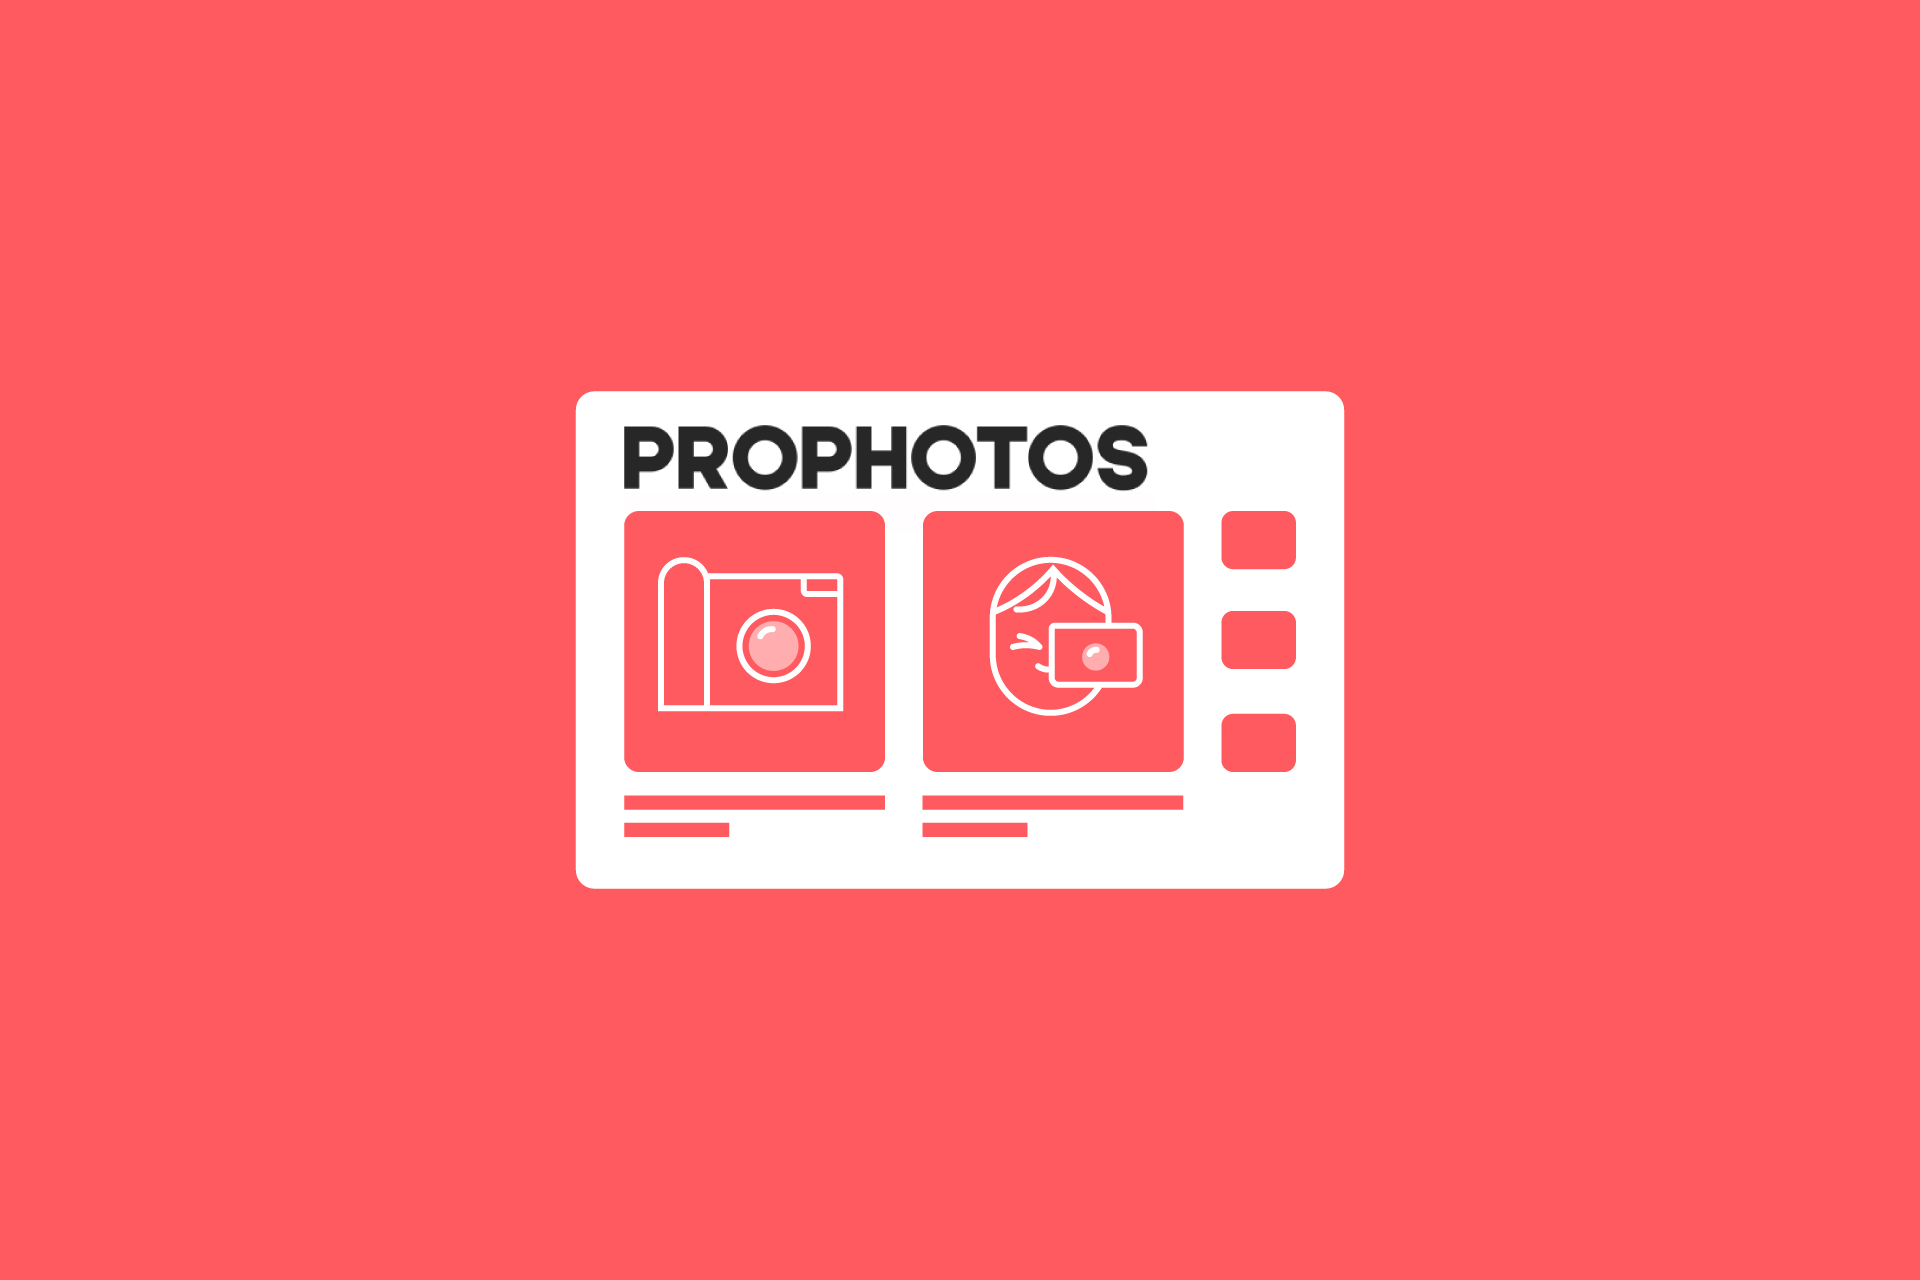 Developing Prophotos.ru media portal for photo equipment & photography by Evrone